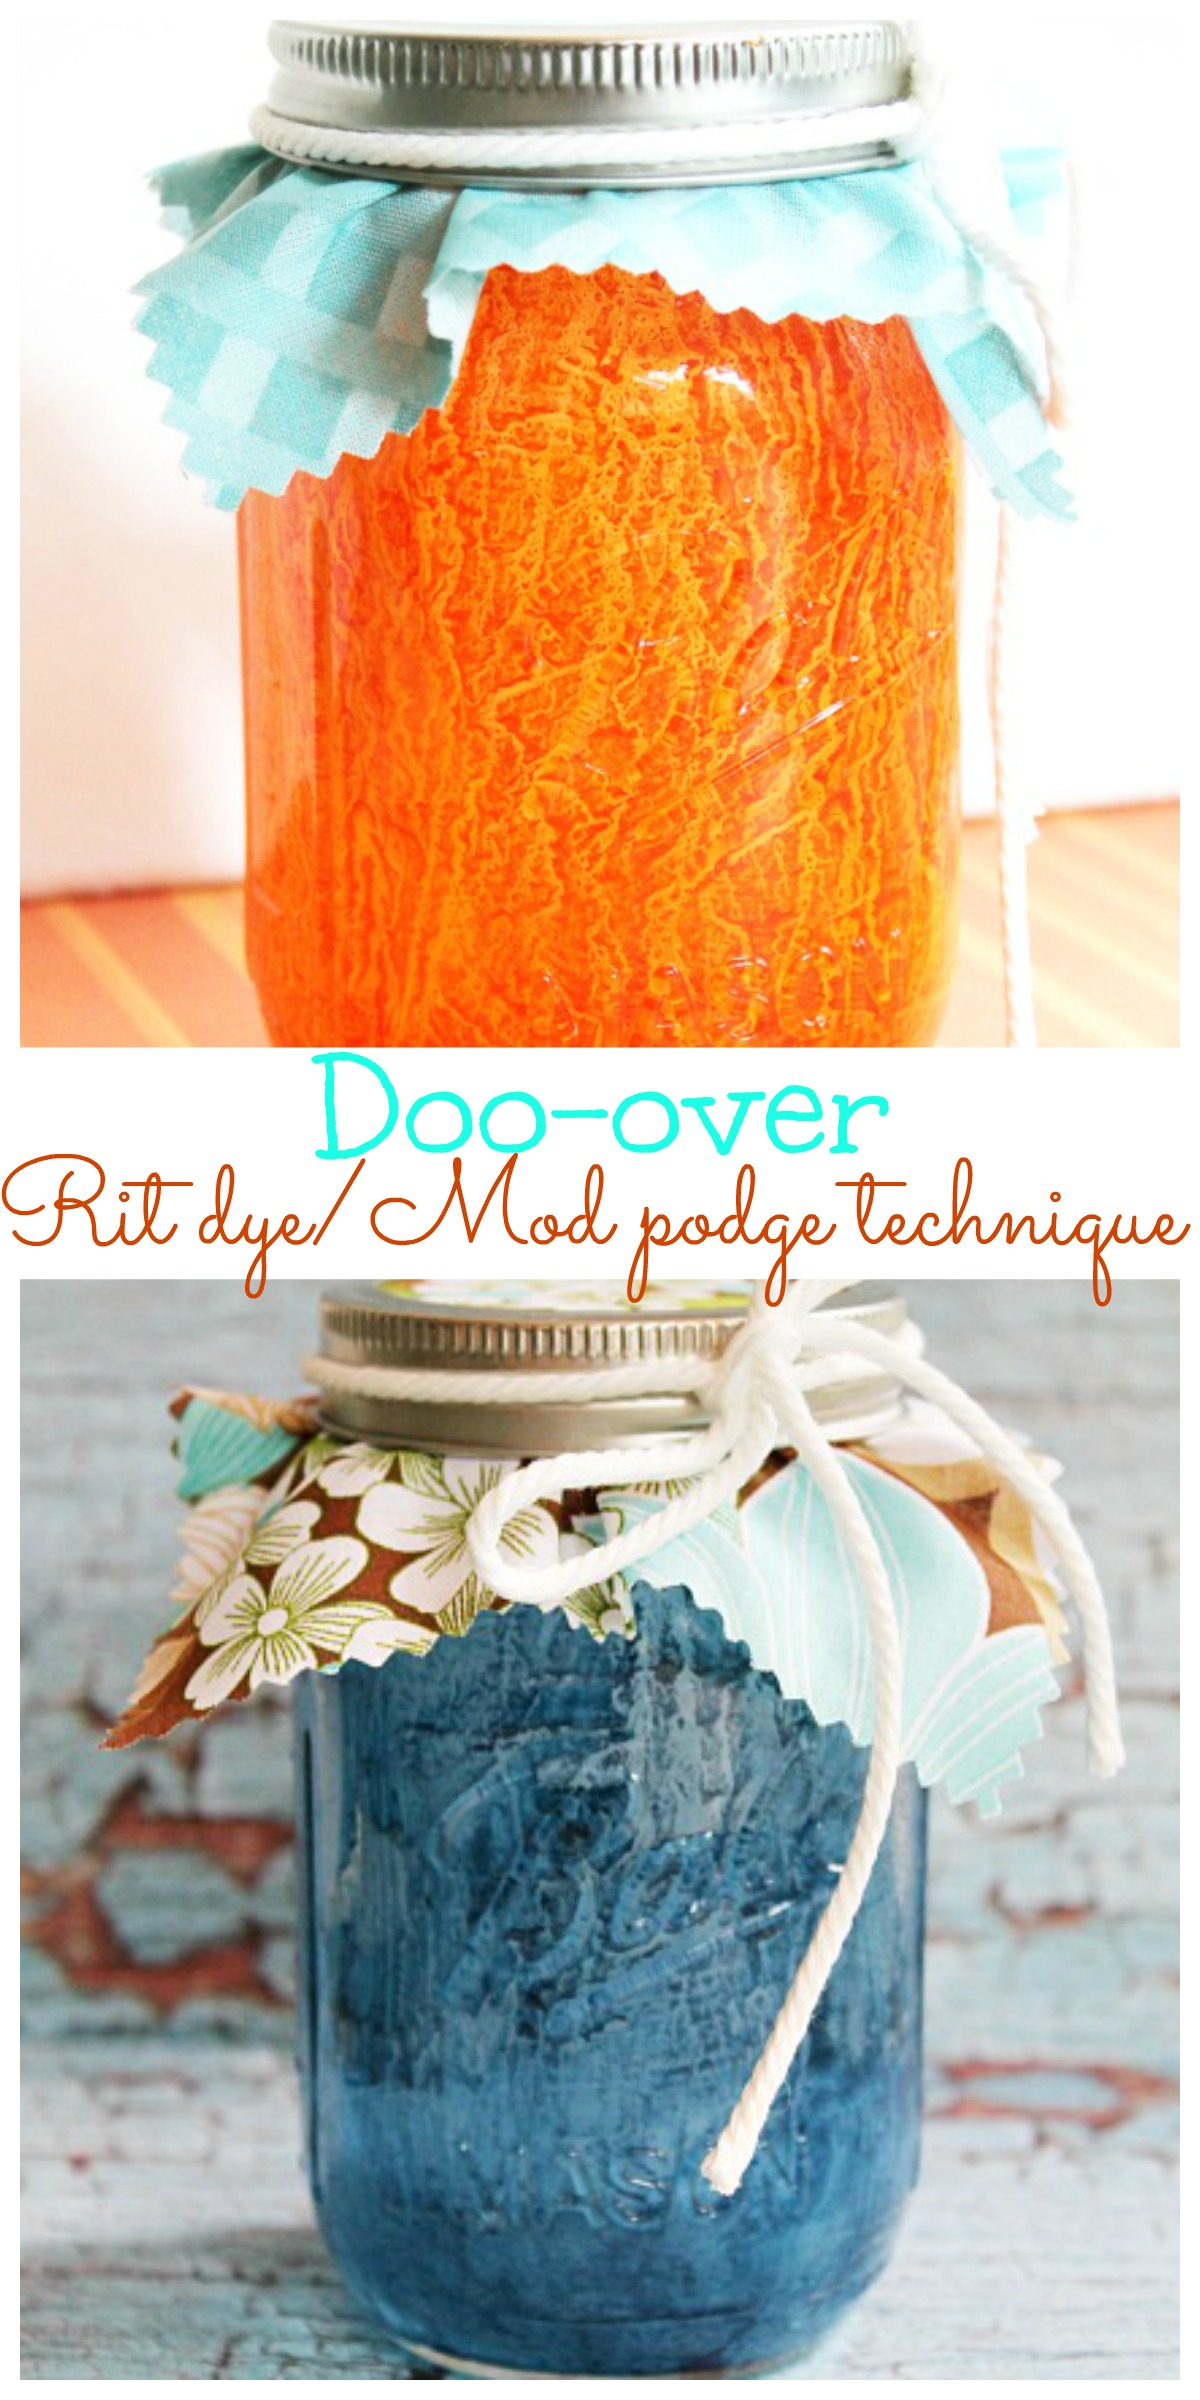 Rit dye Mod podge doo-over technique, how to paint glass